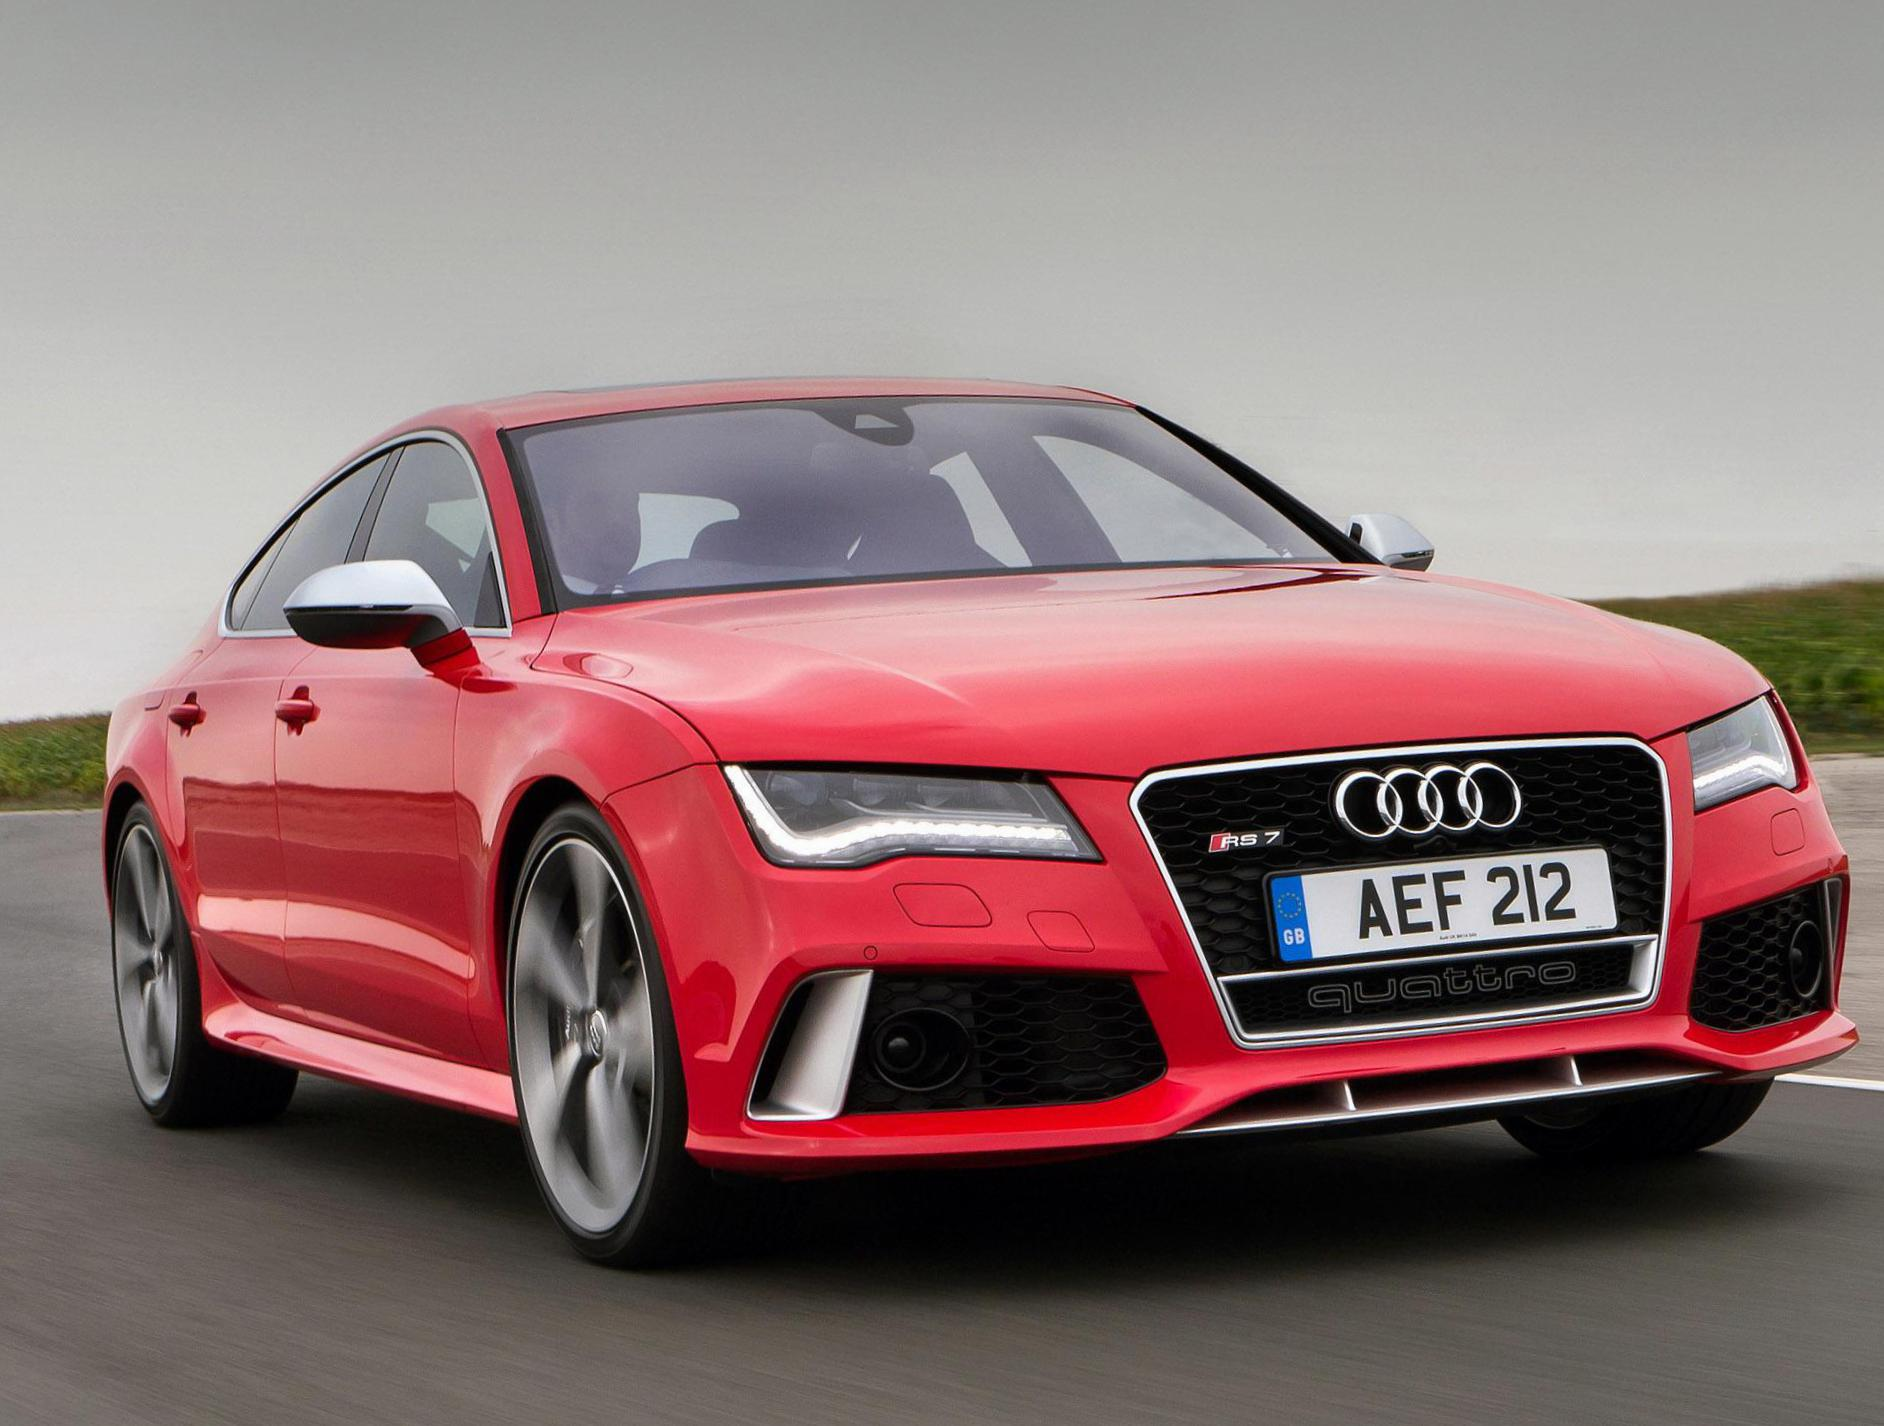 RS7 Sportback Audi review hatchback